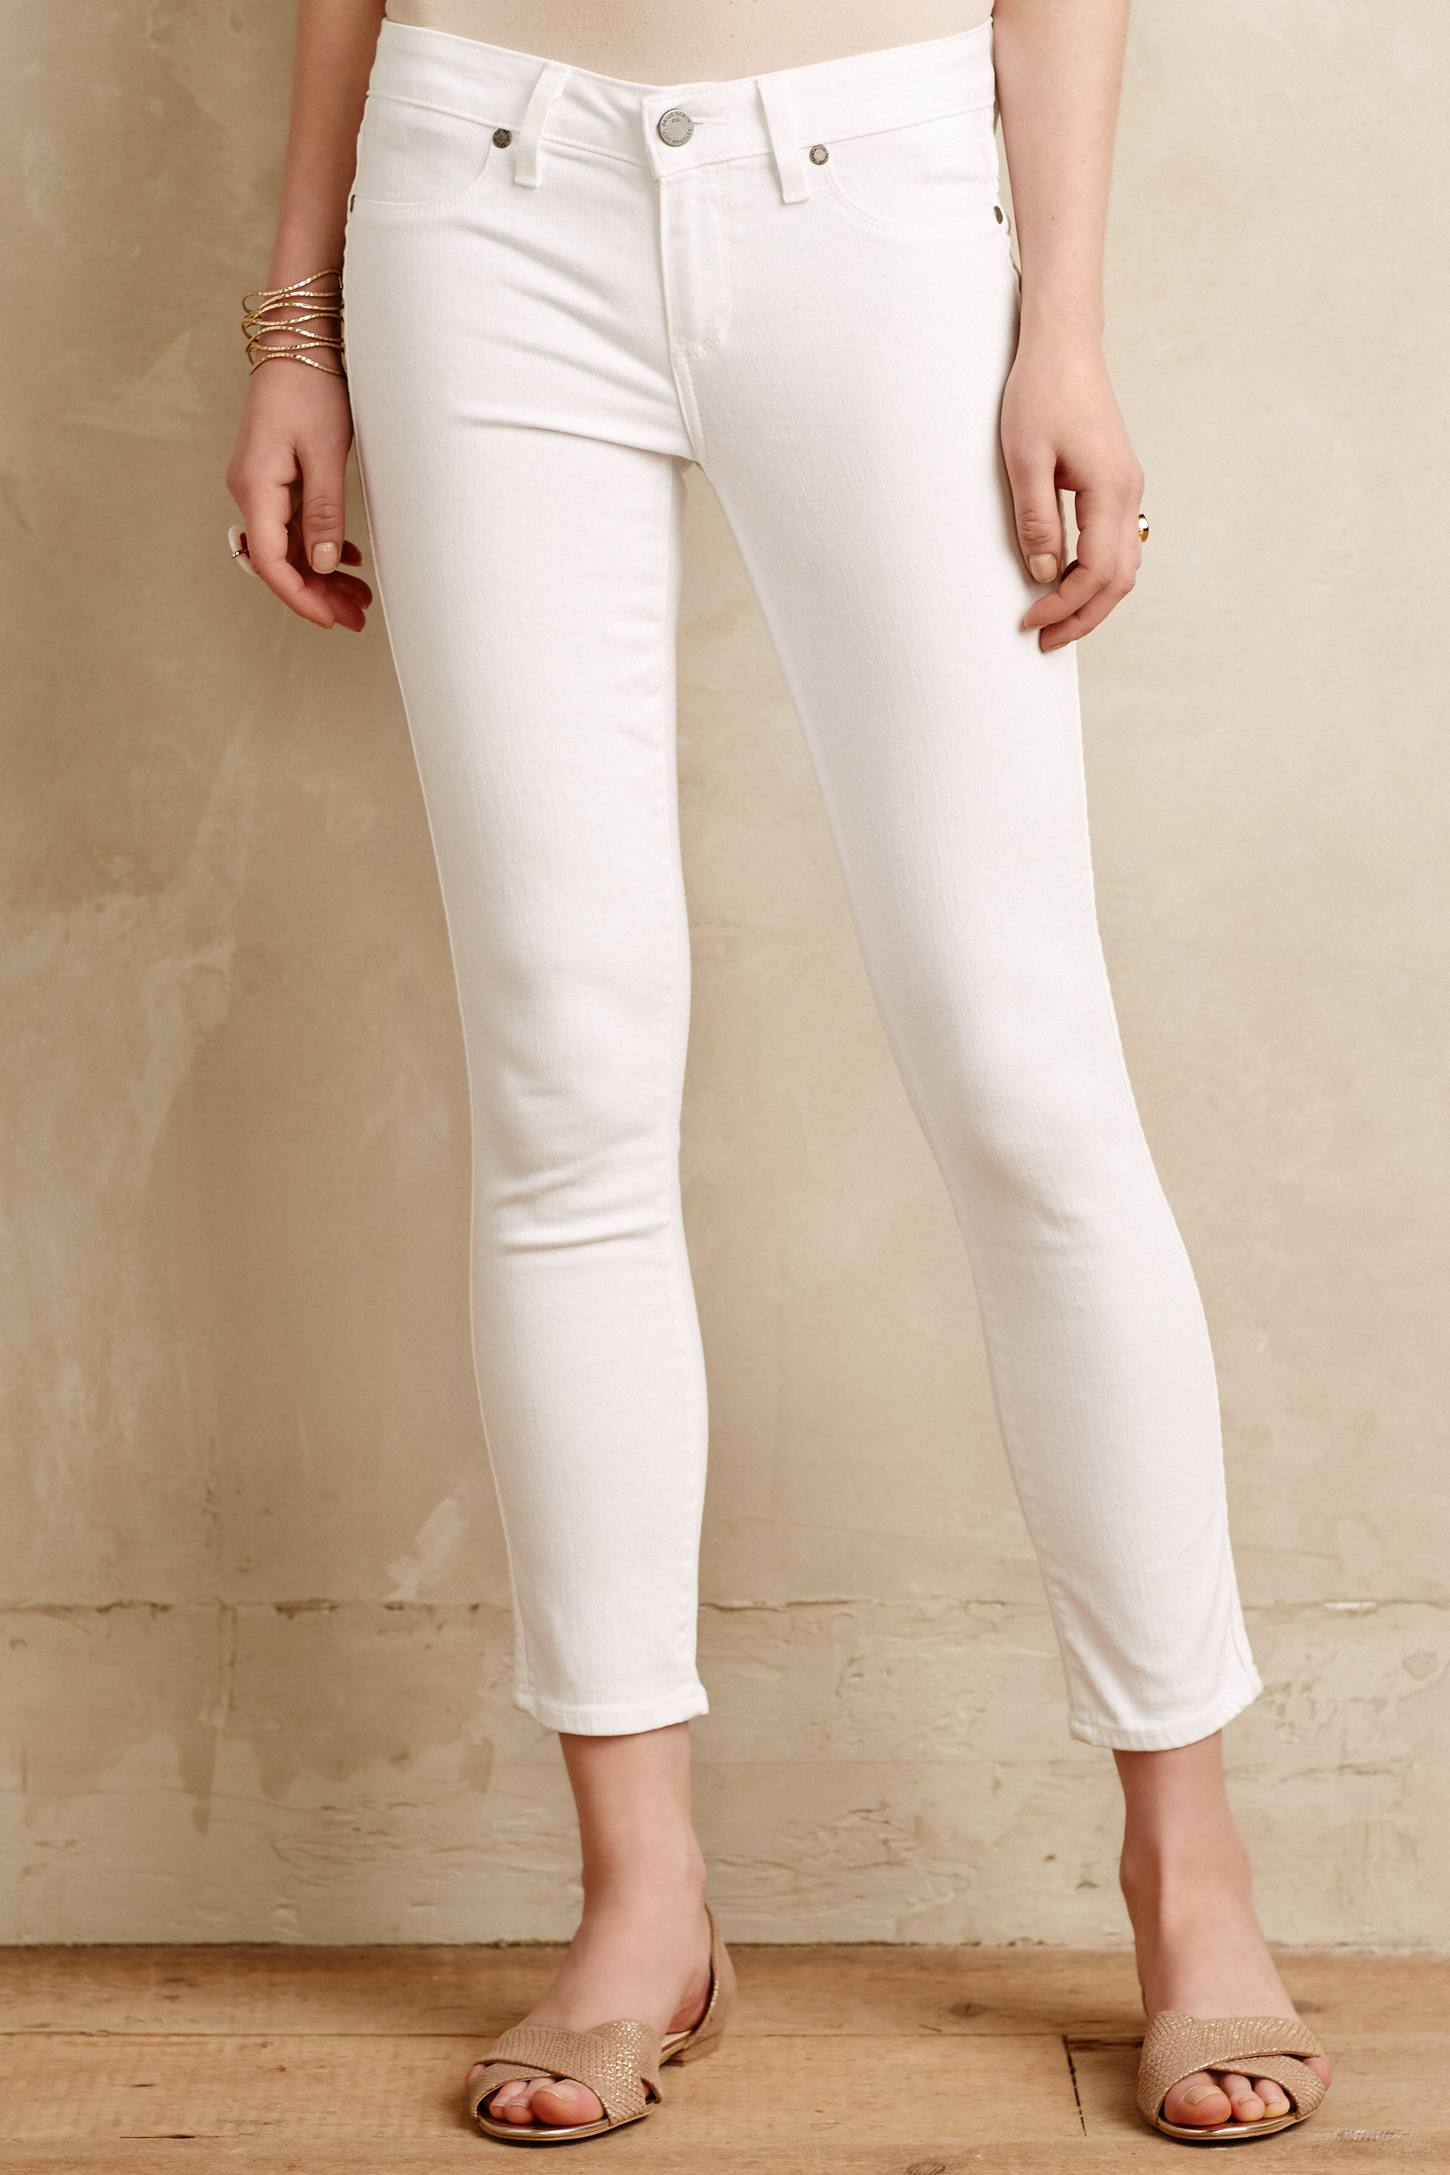 Slide View: 2: Paige Verdugo Cropped Jeans